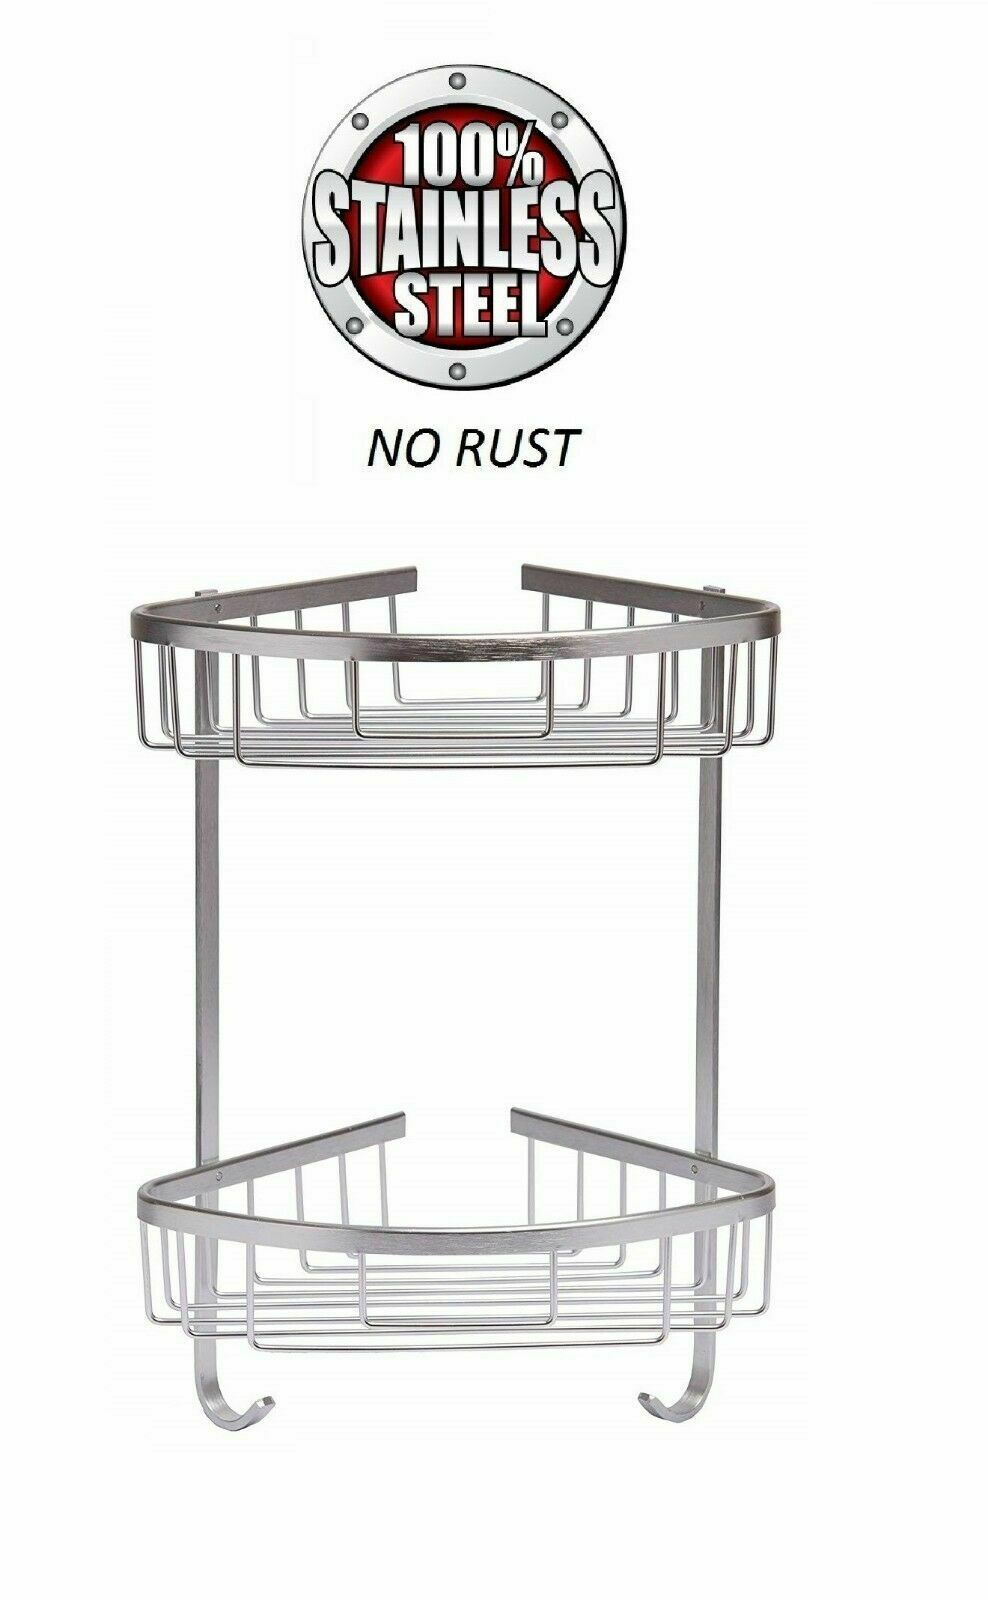 2 TIER STAINLESS STEEL CADDY